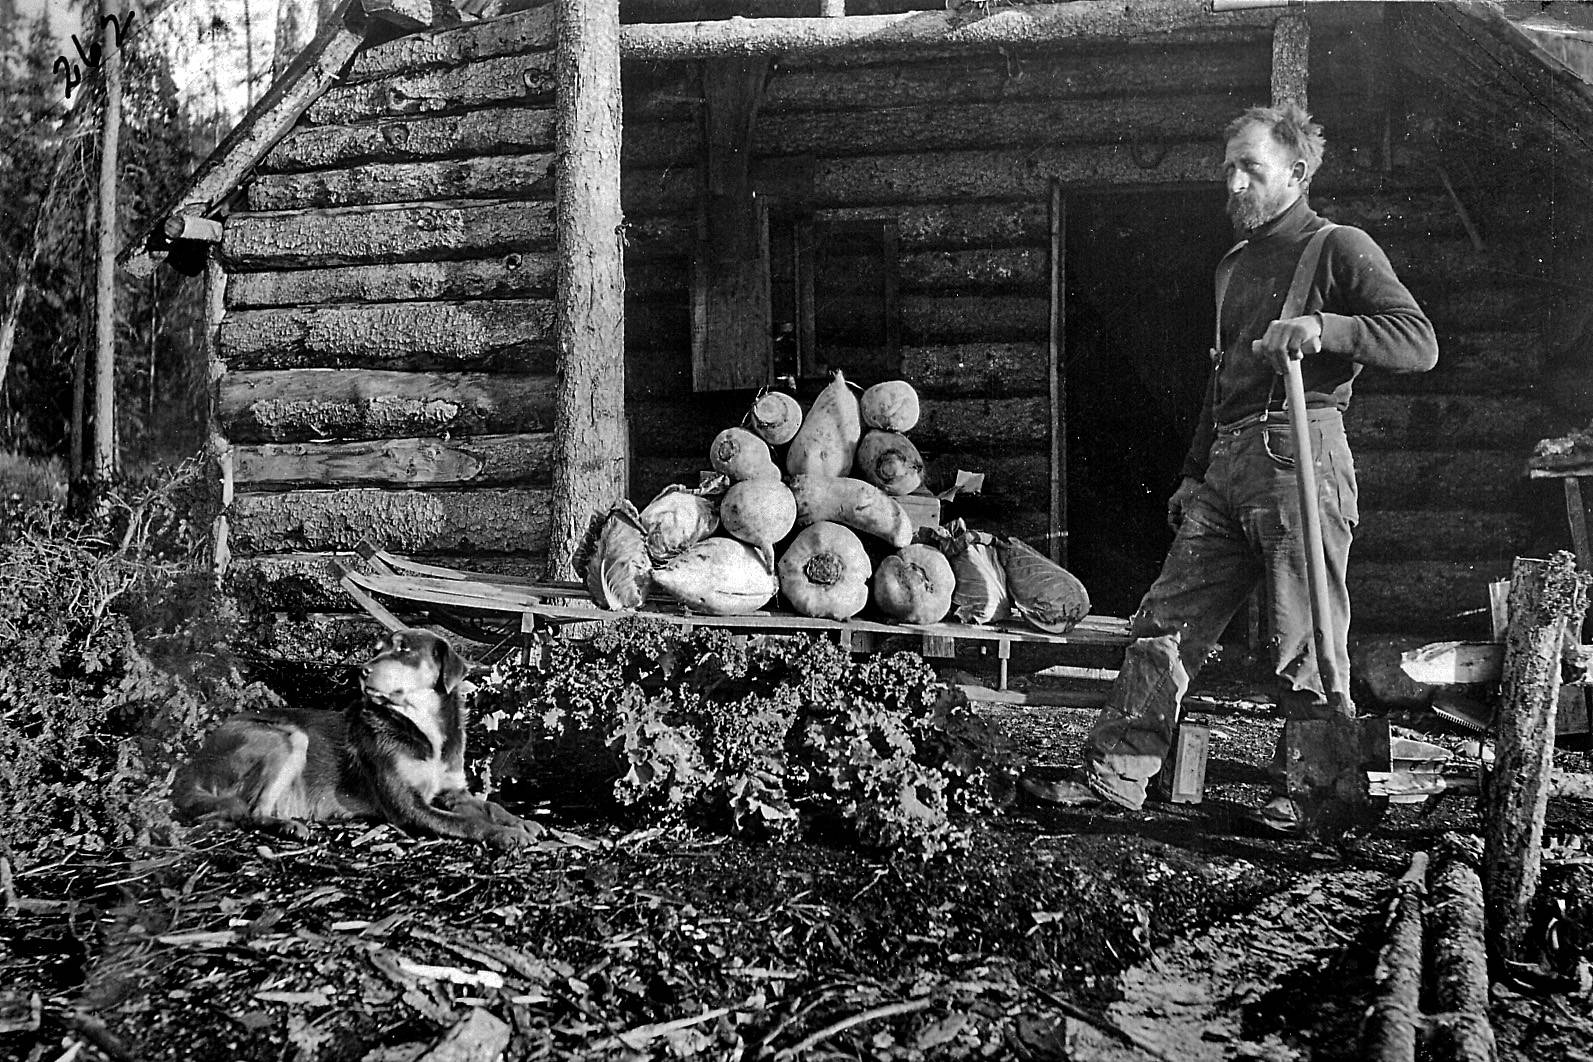 Herman Stelter at his home on Kenai R, circa 1910s--Herman Stelter, one of the few members of the Kings County Mining Company to remain in or return to Alaska, poses here with a big crop of vegetables by his home near the Kenai River canyon. (U.S. Forest Service photo)